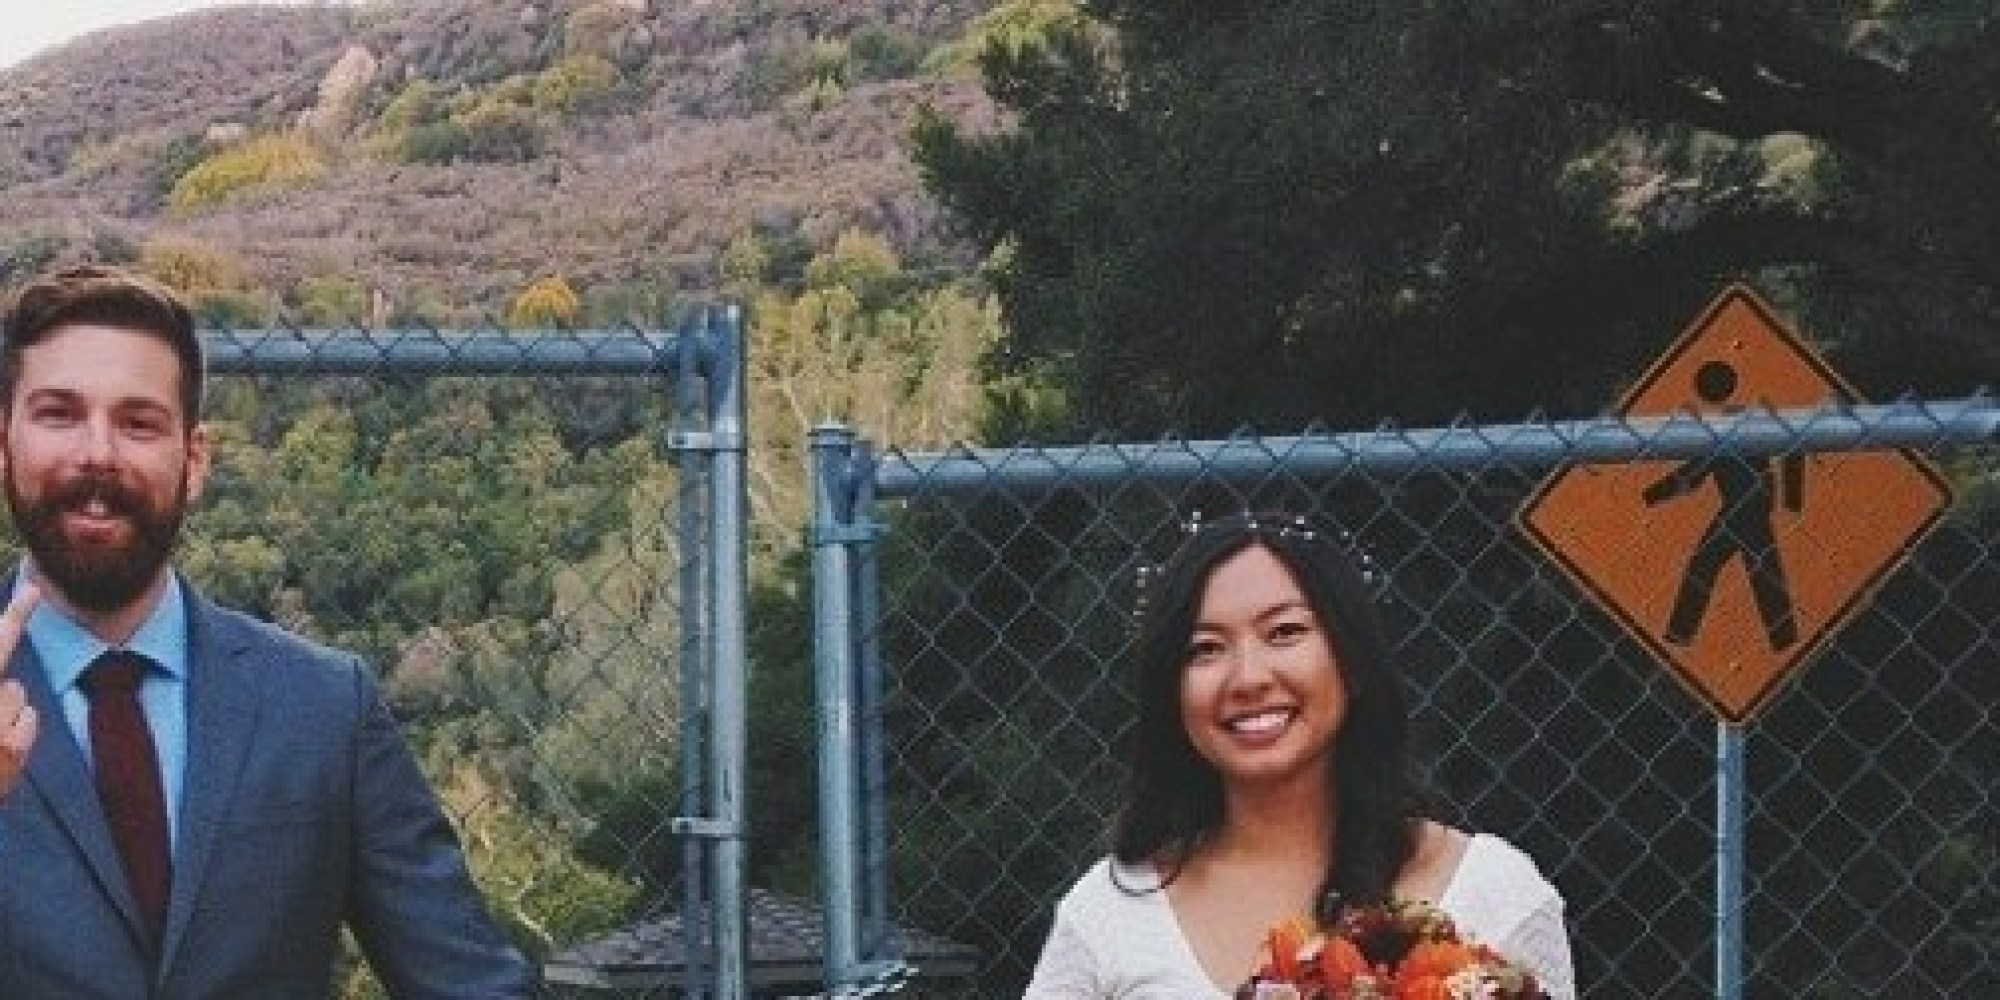 yosemite latino personals Orange co missed connections - craigslist cl  favorite this post aug 4 trip to yosemite  half  favorite this post aug 4 looking for latino guy who i met in .